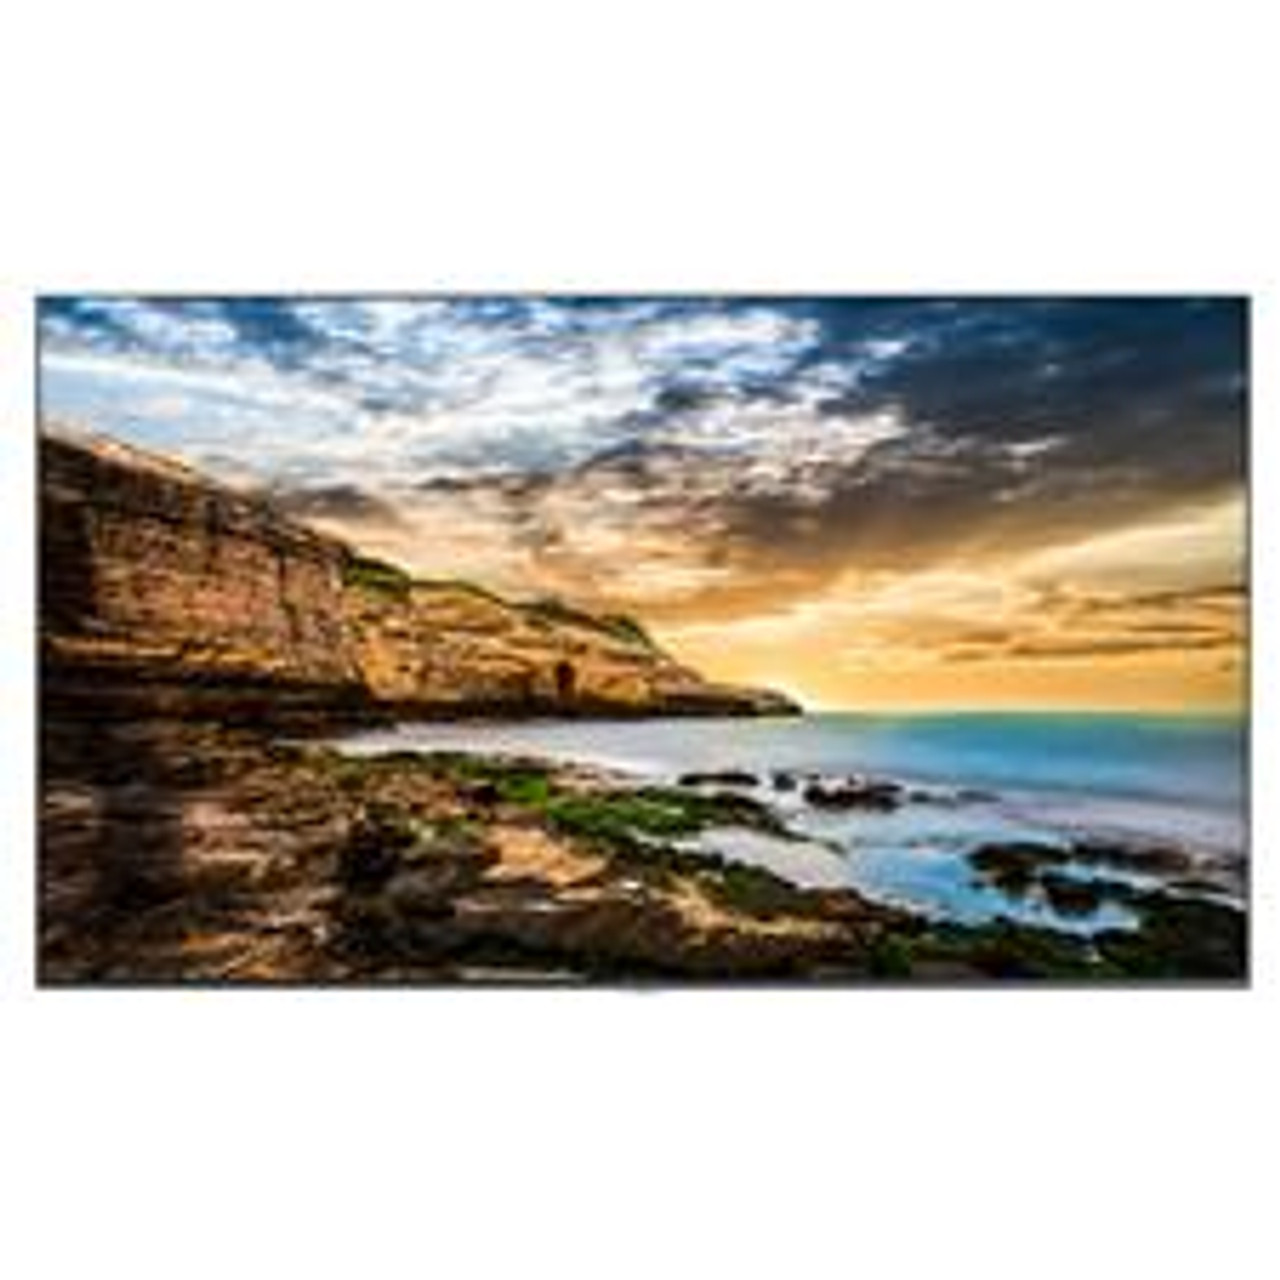 Samsung QE55T 55in 4K UHD 16/7 300nit Commercial Display